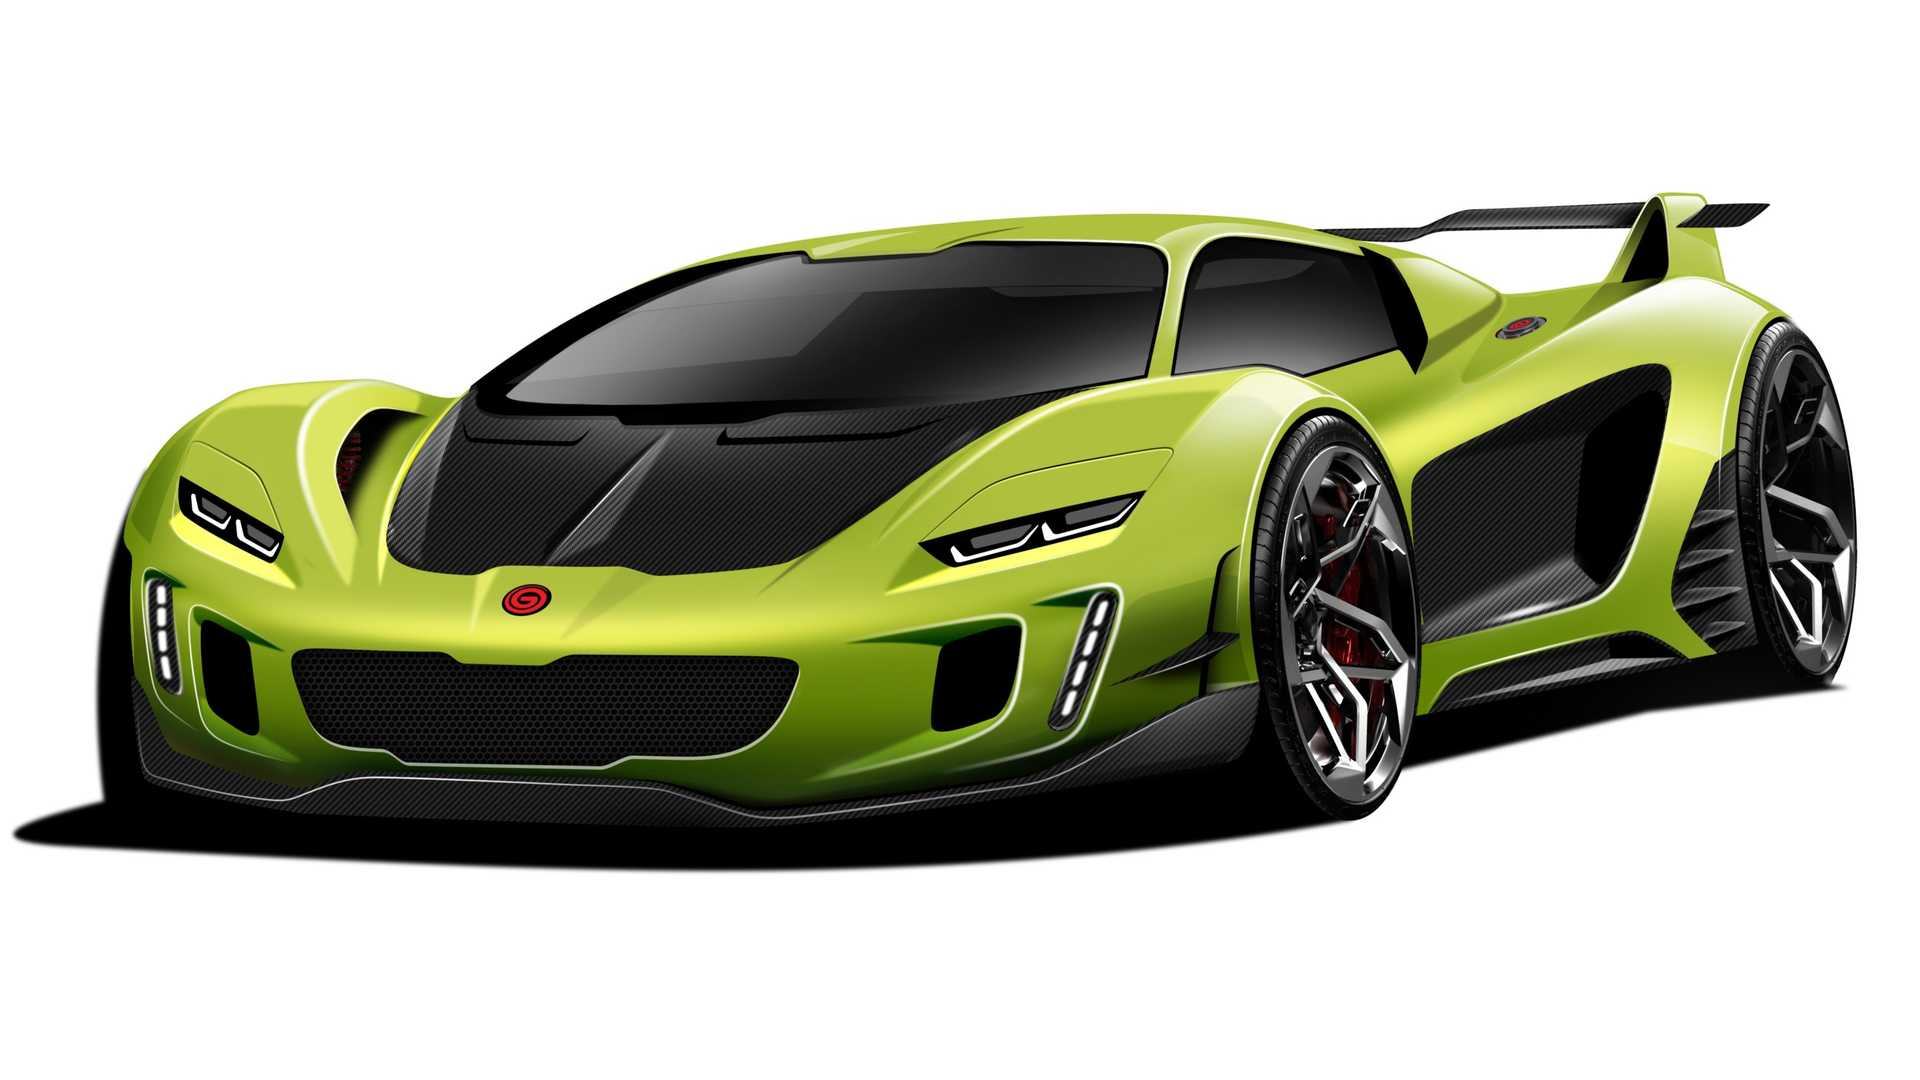 Gemballa Hypercar To Deliver Amazing Performance, Might Get Manual